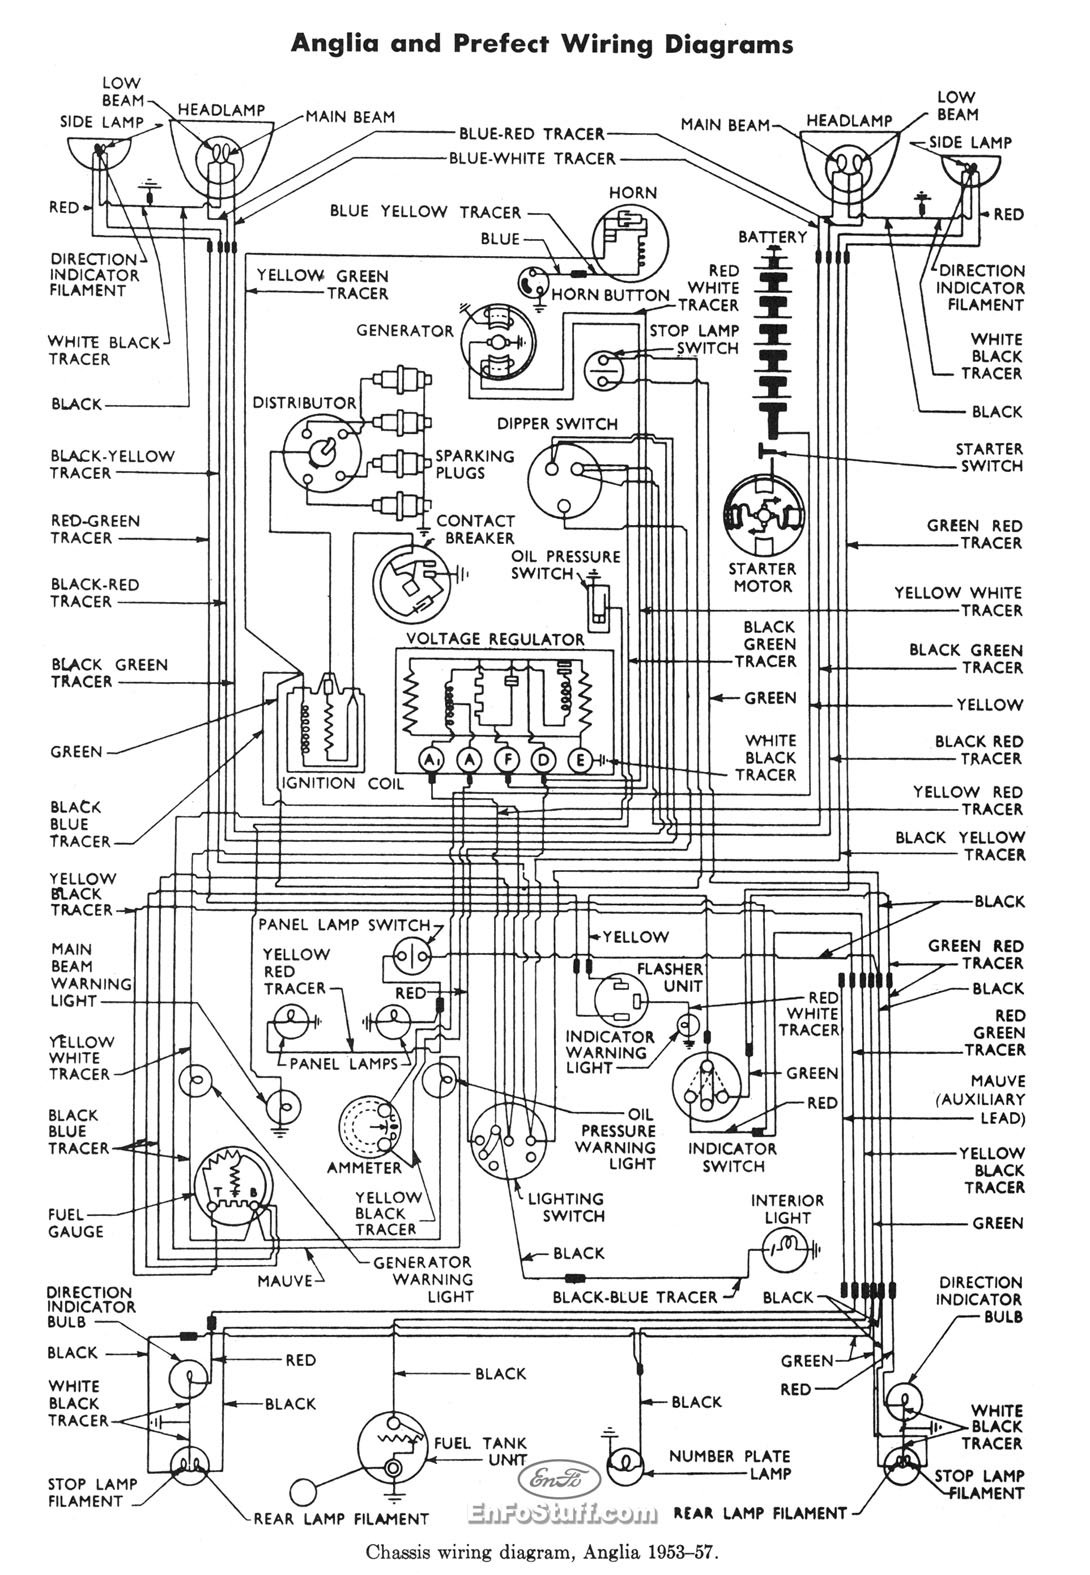 ford 3930 wiring diagram wiring diagram todaysford 3930 wiring diagram  wiring diagrams ford new holland 3930